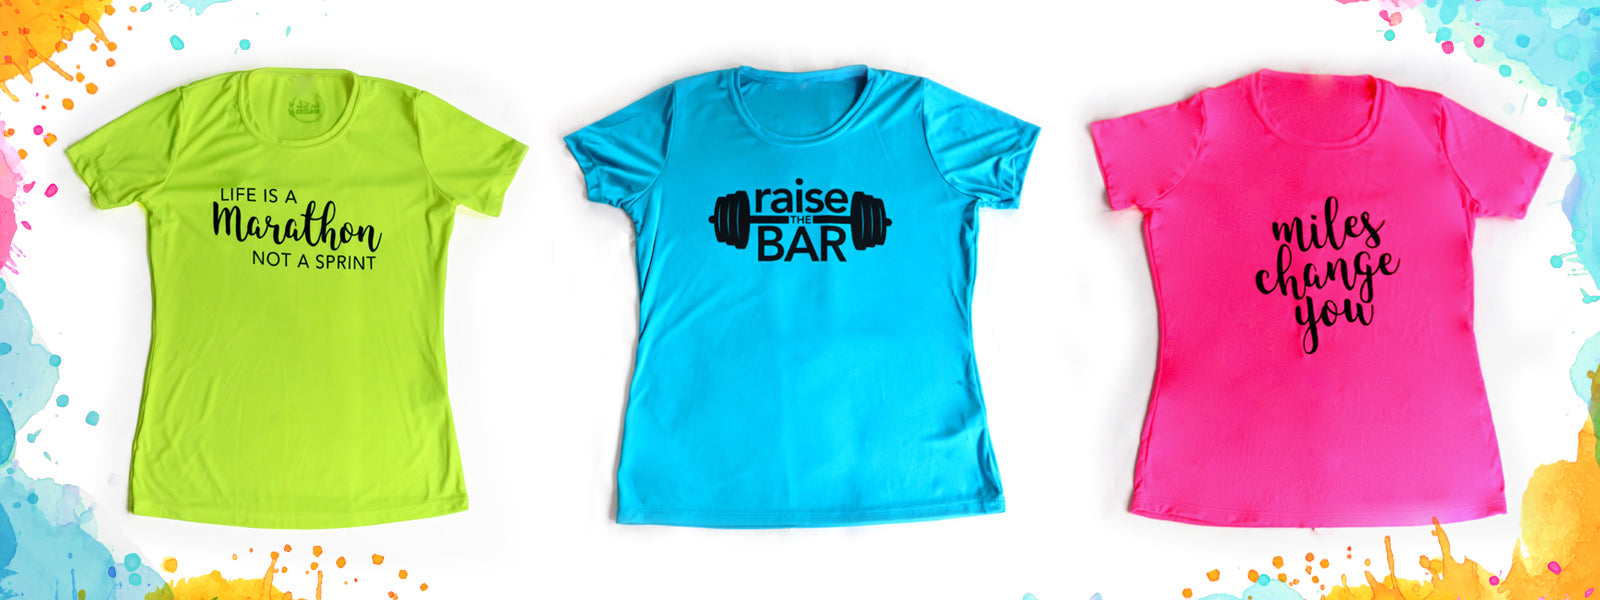 Running T-Shirts for Women